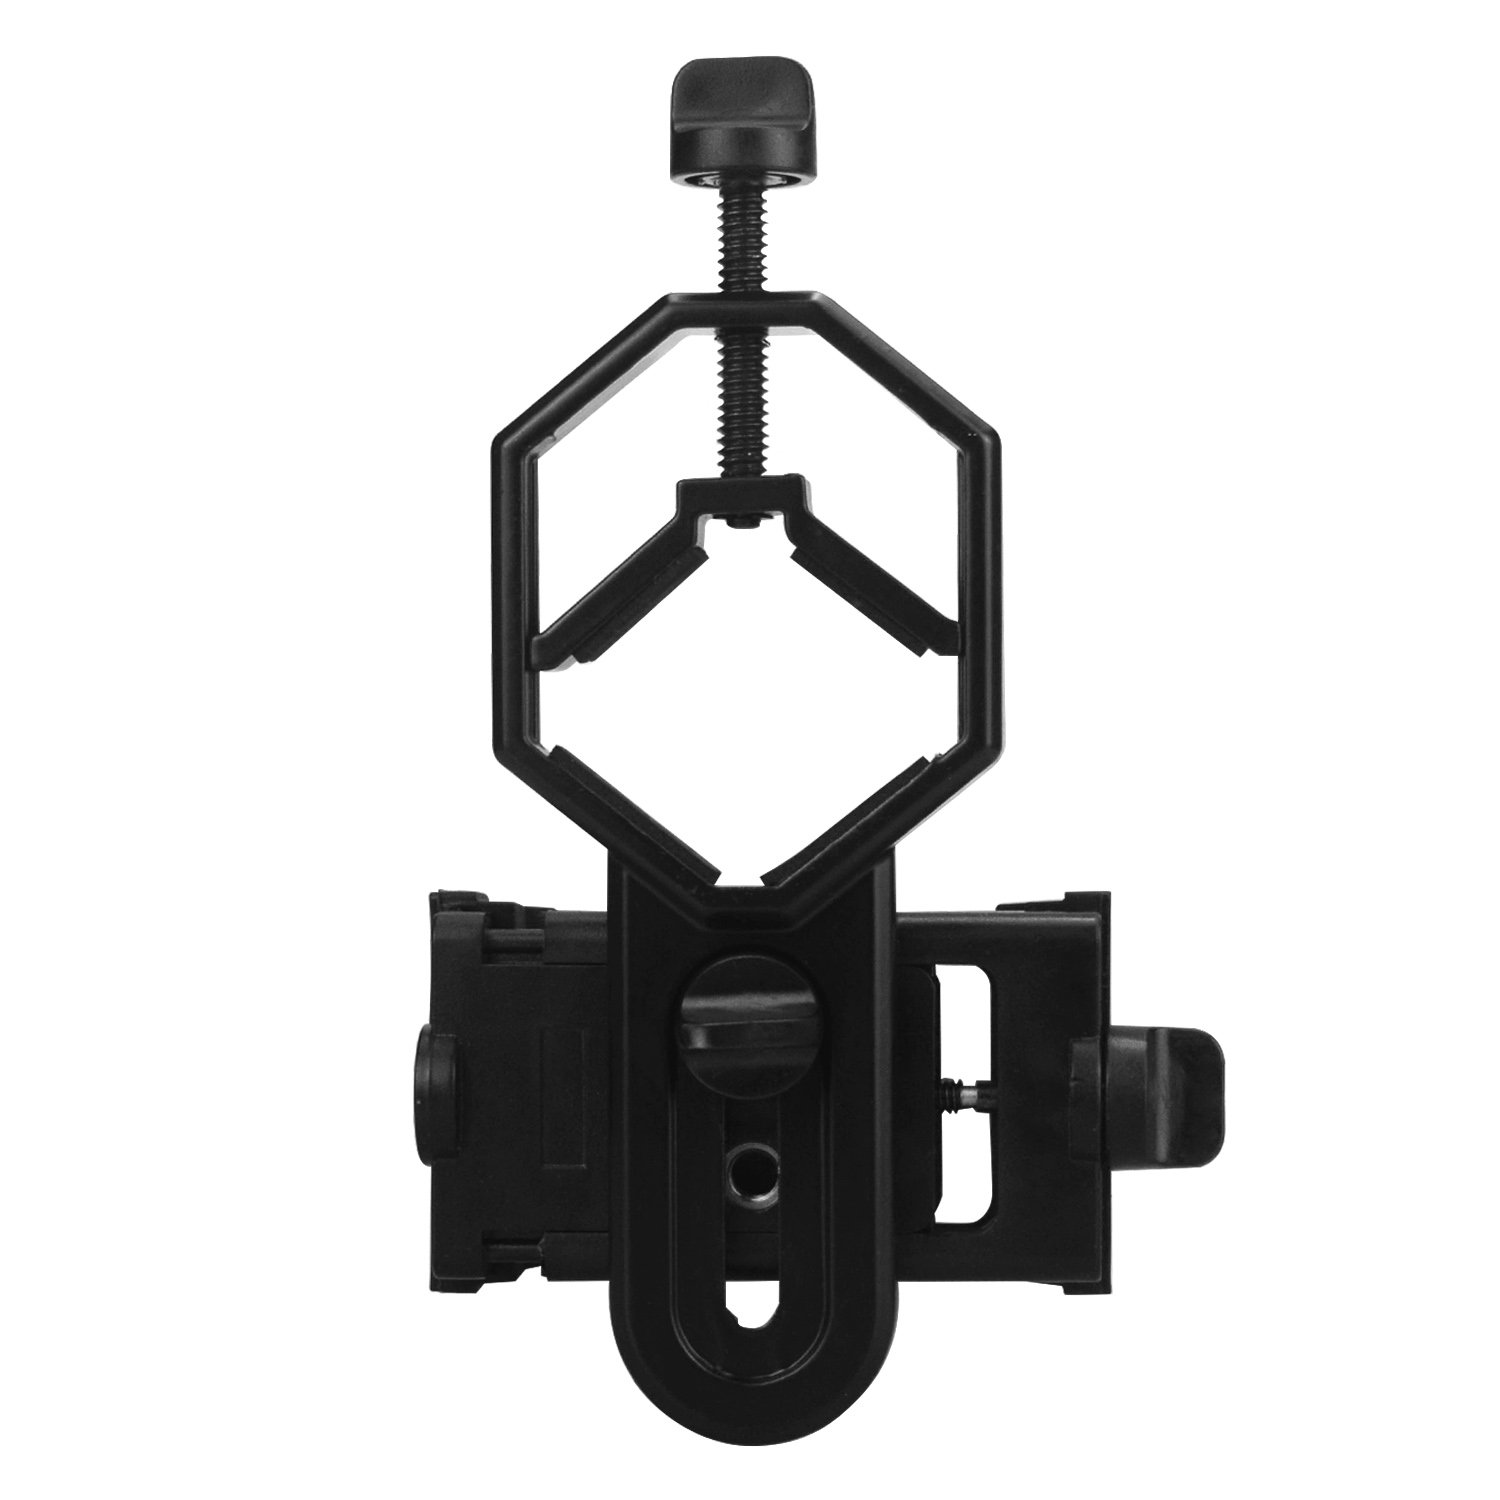 Cellphone Adapter Mount, Spotting Scope Cellphone Adapter Mount for Rifle Scope,